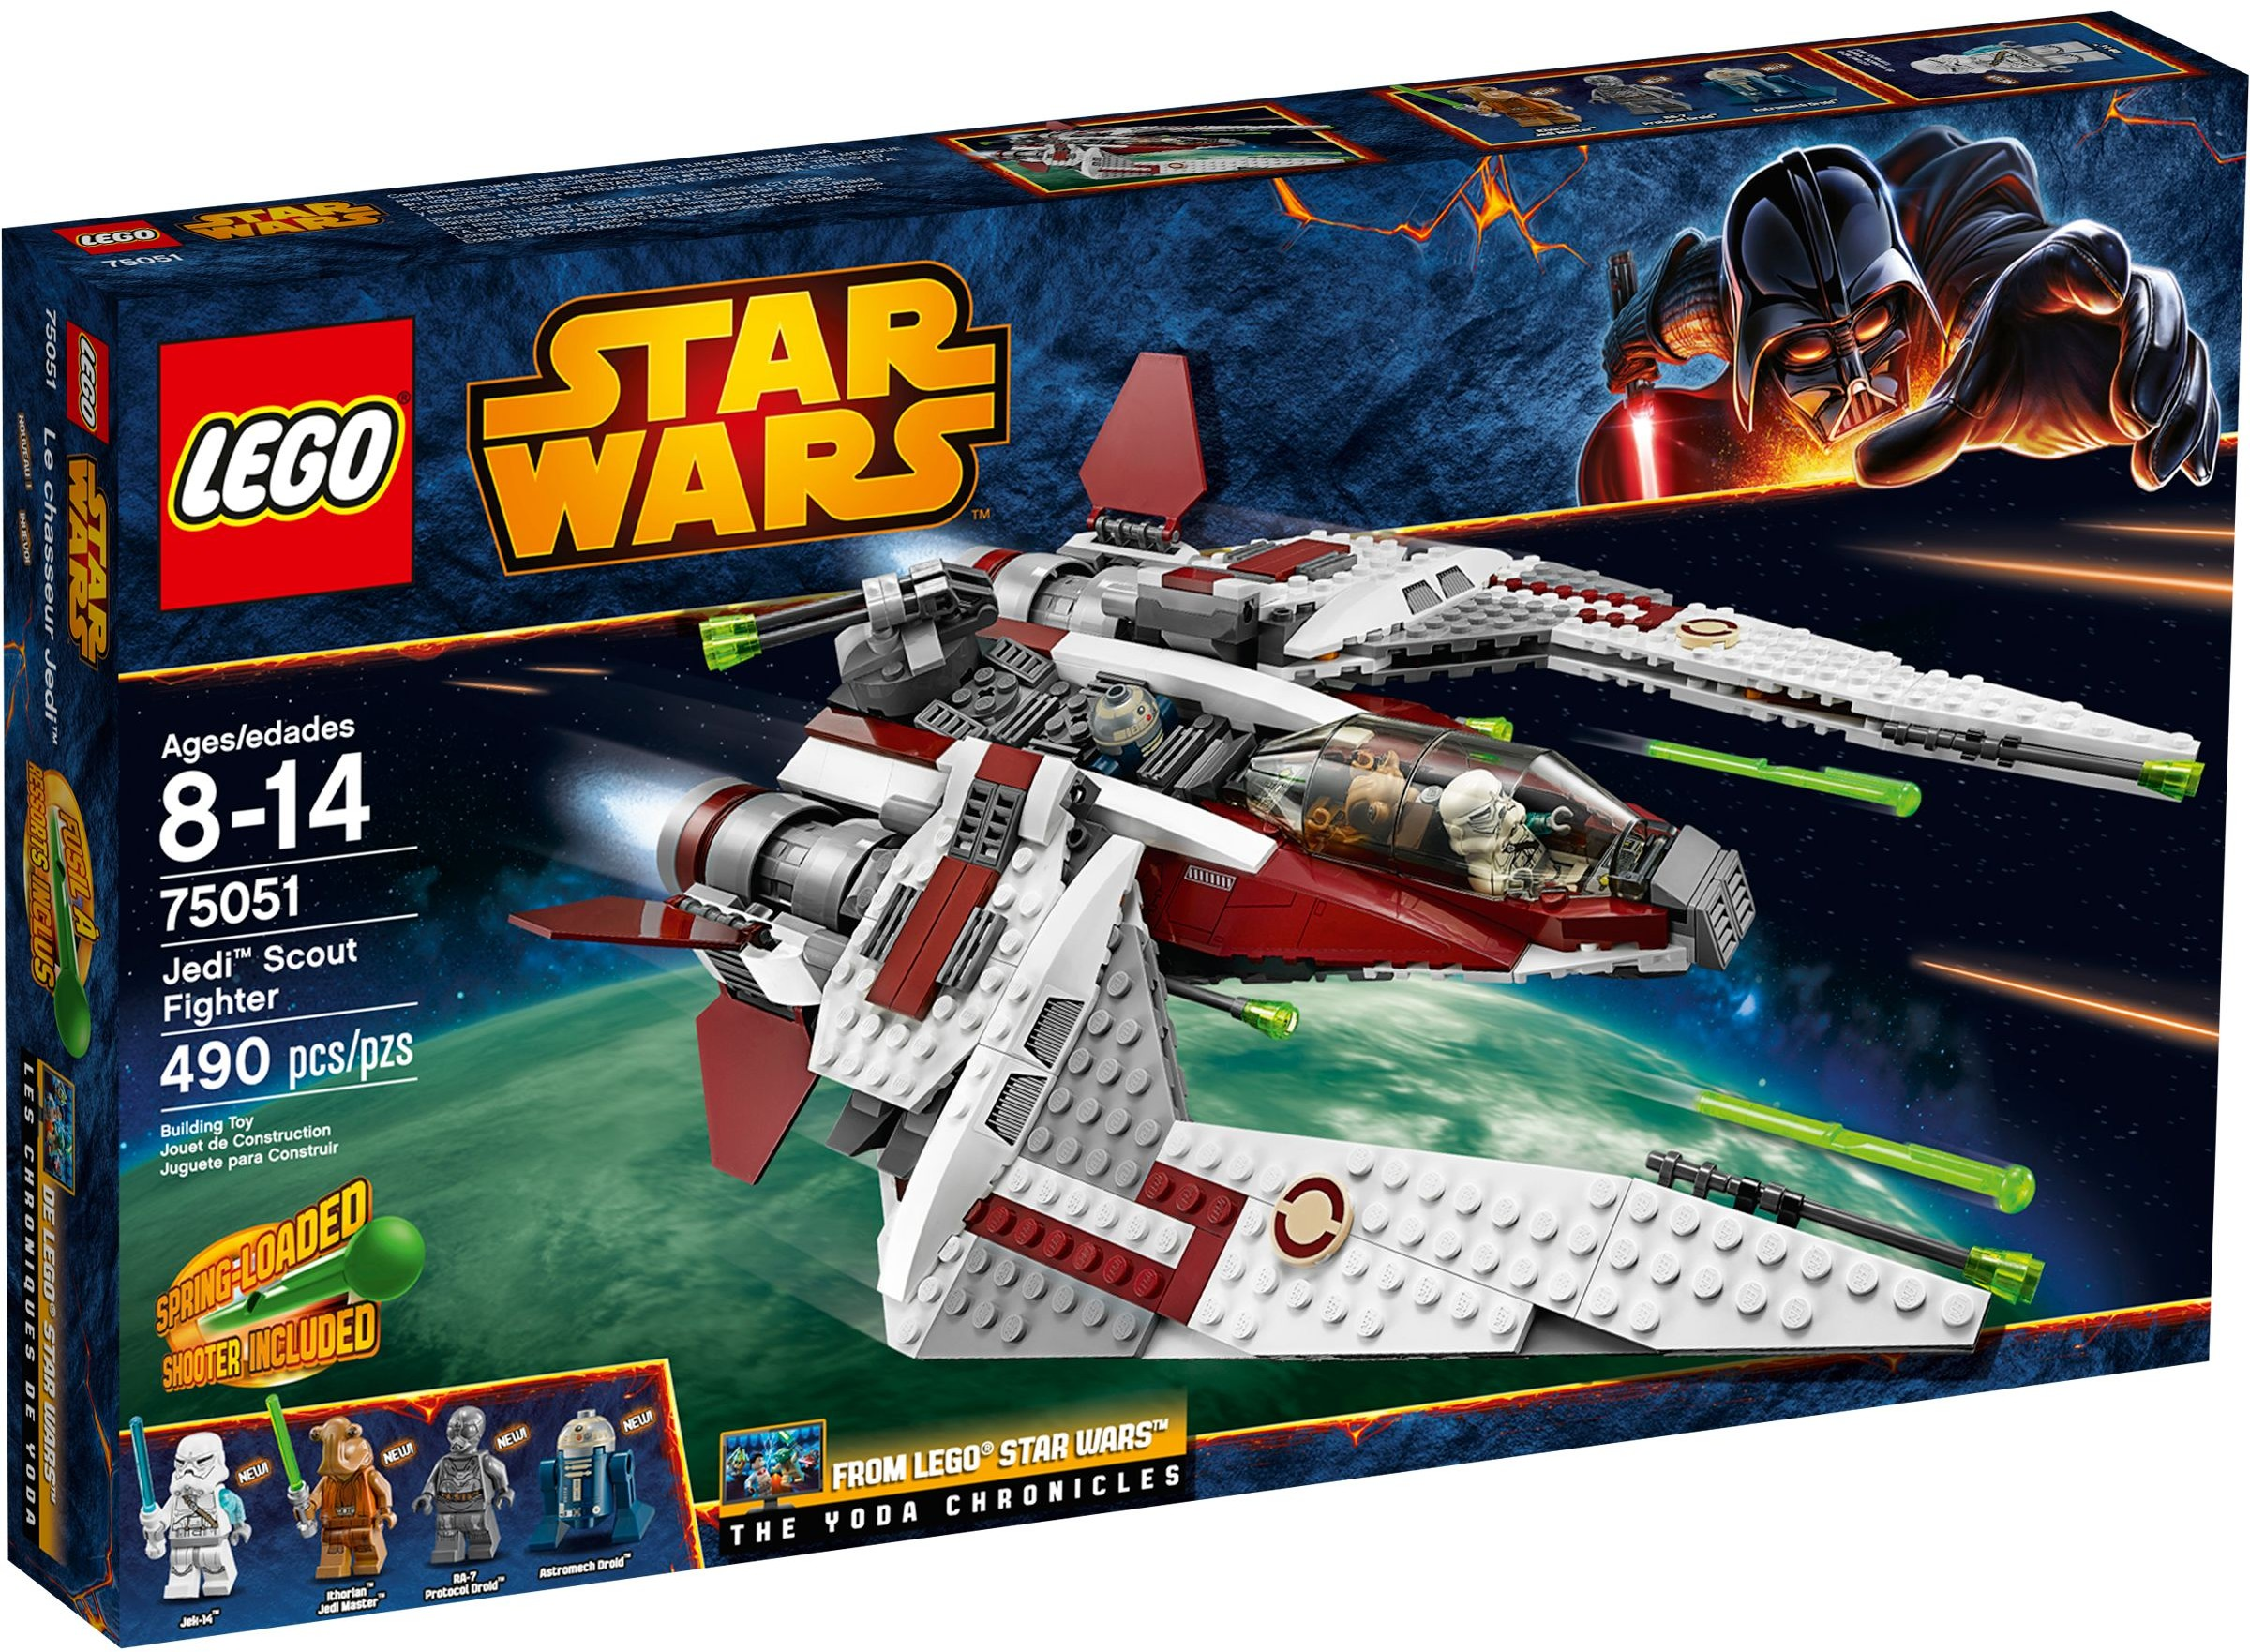 LEGO Star Wars 75051 Jedi scout fighter